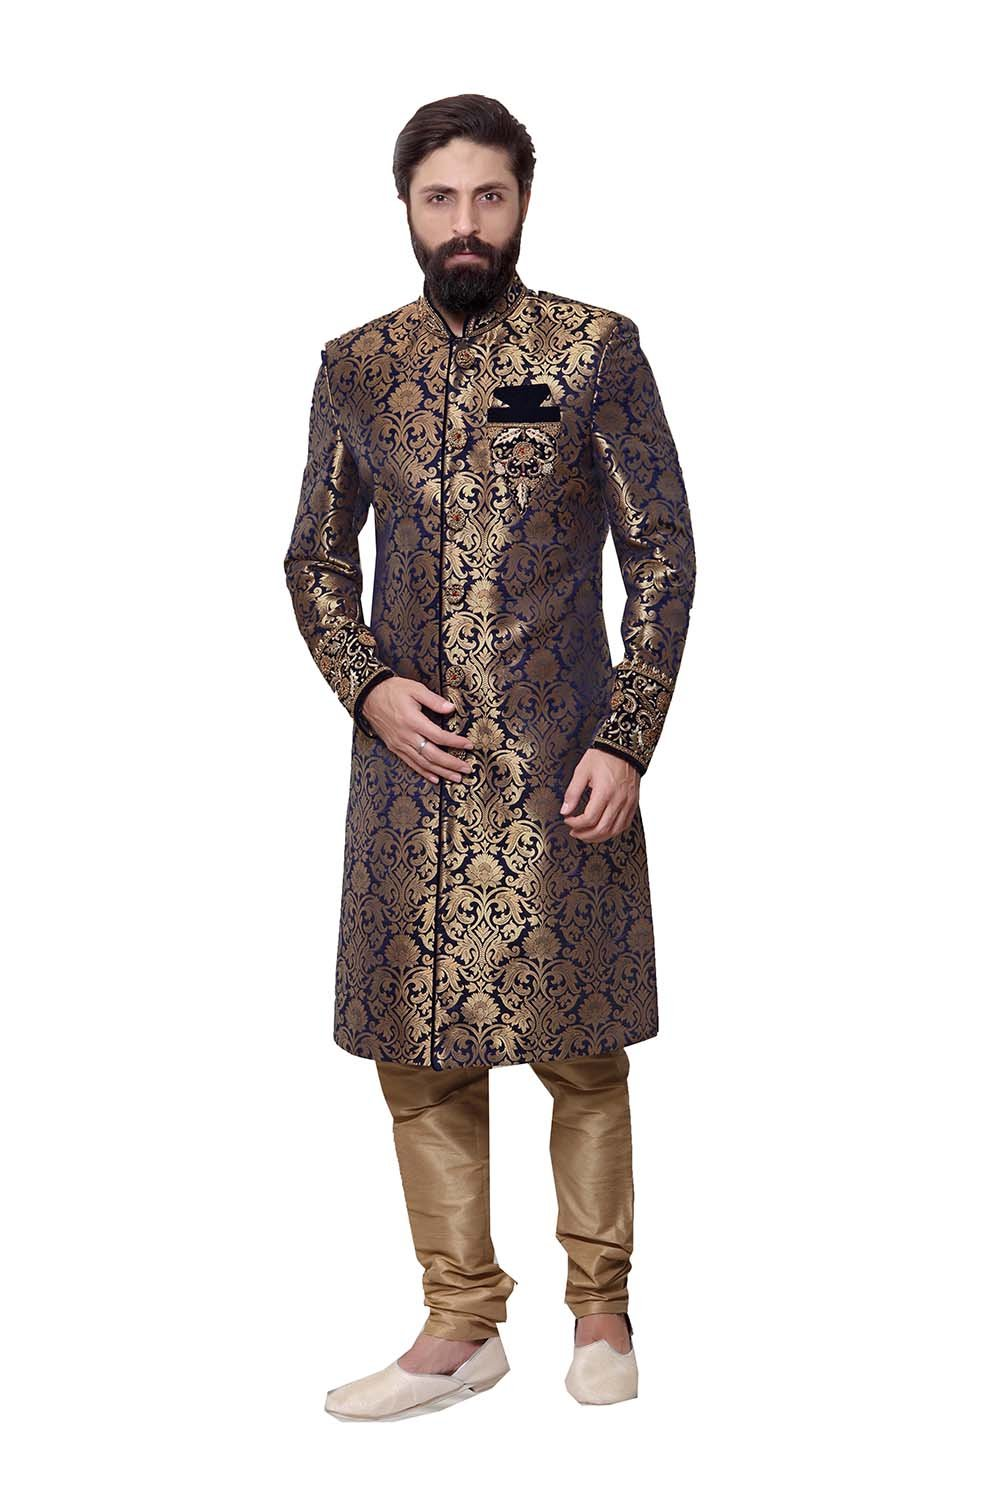 Indian Sherwani For Men Readymade Designer Partywear For Wedding Exclusive Fashion Indo-Western Dress